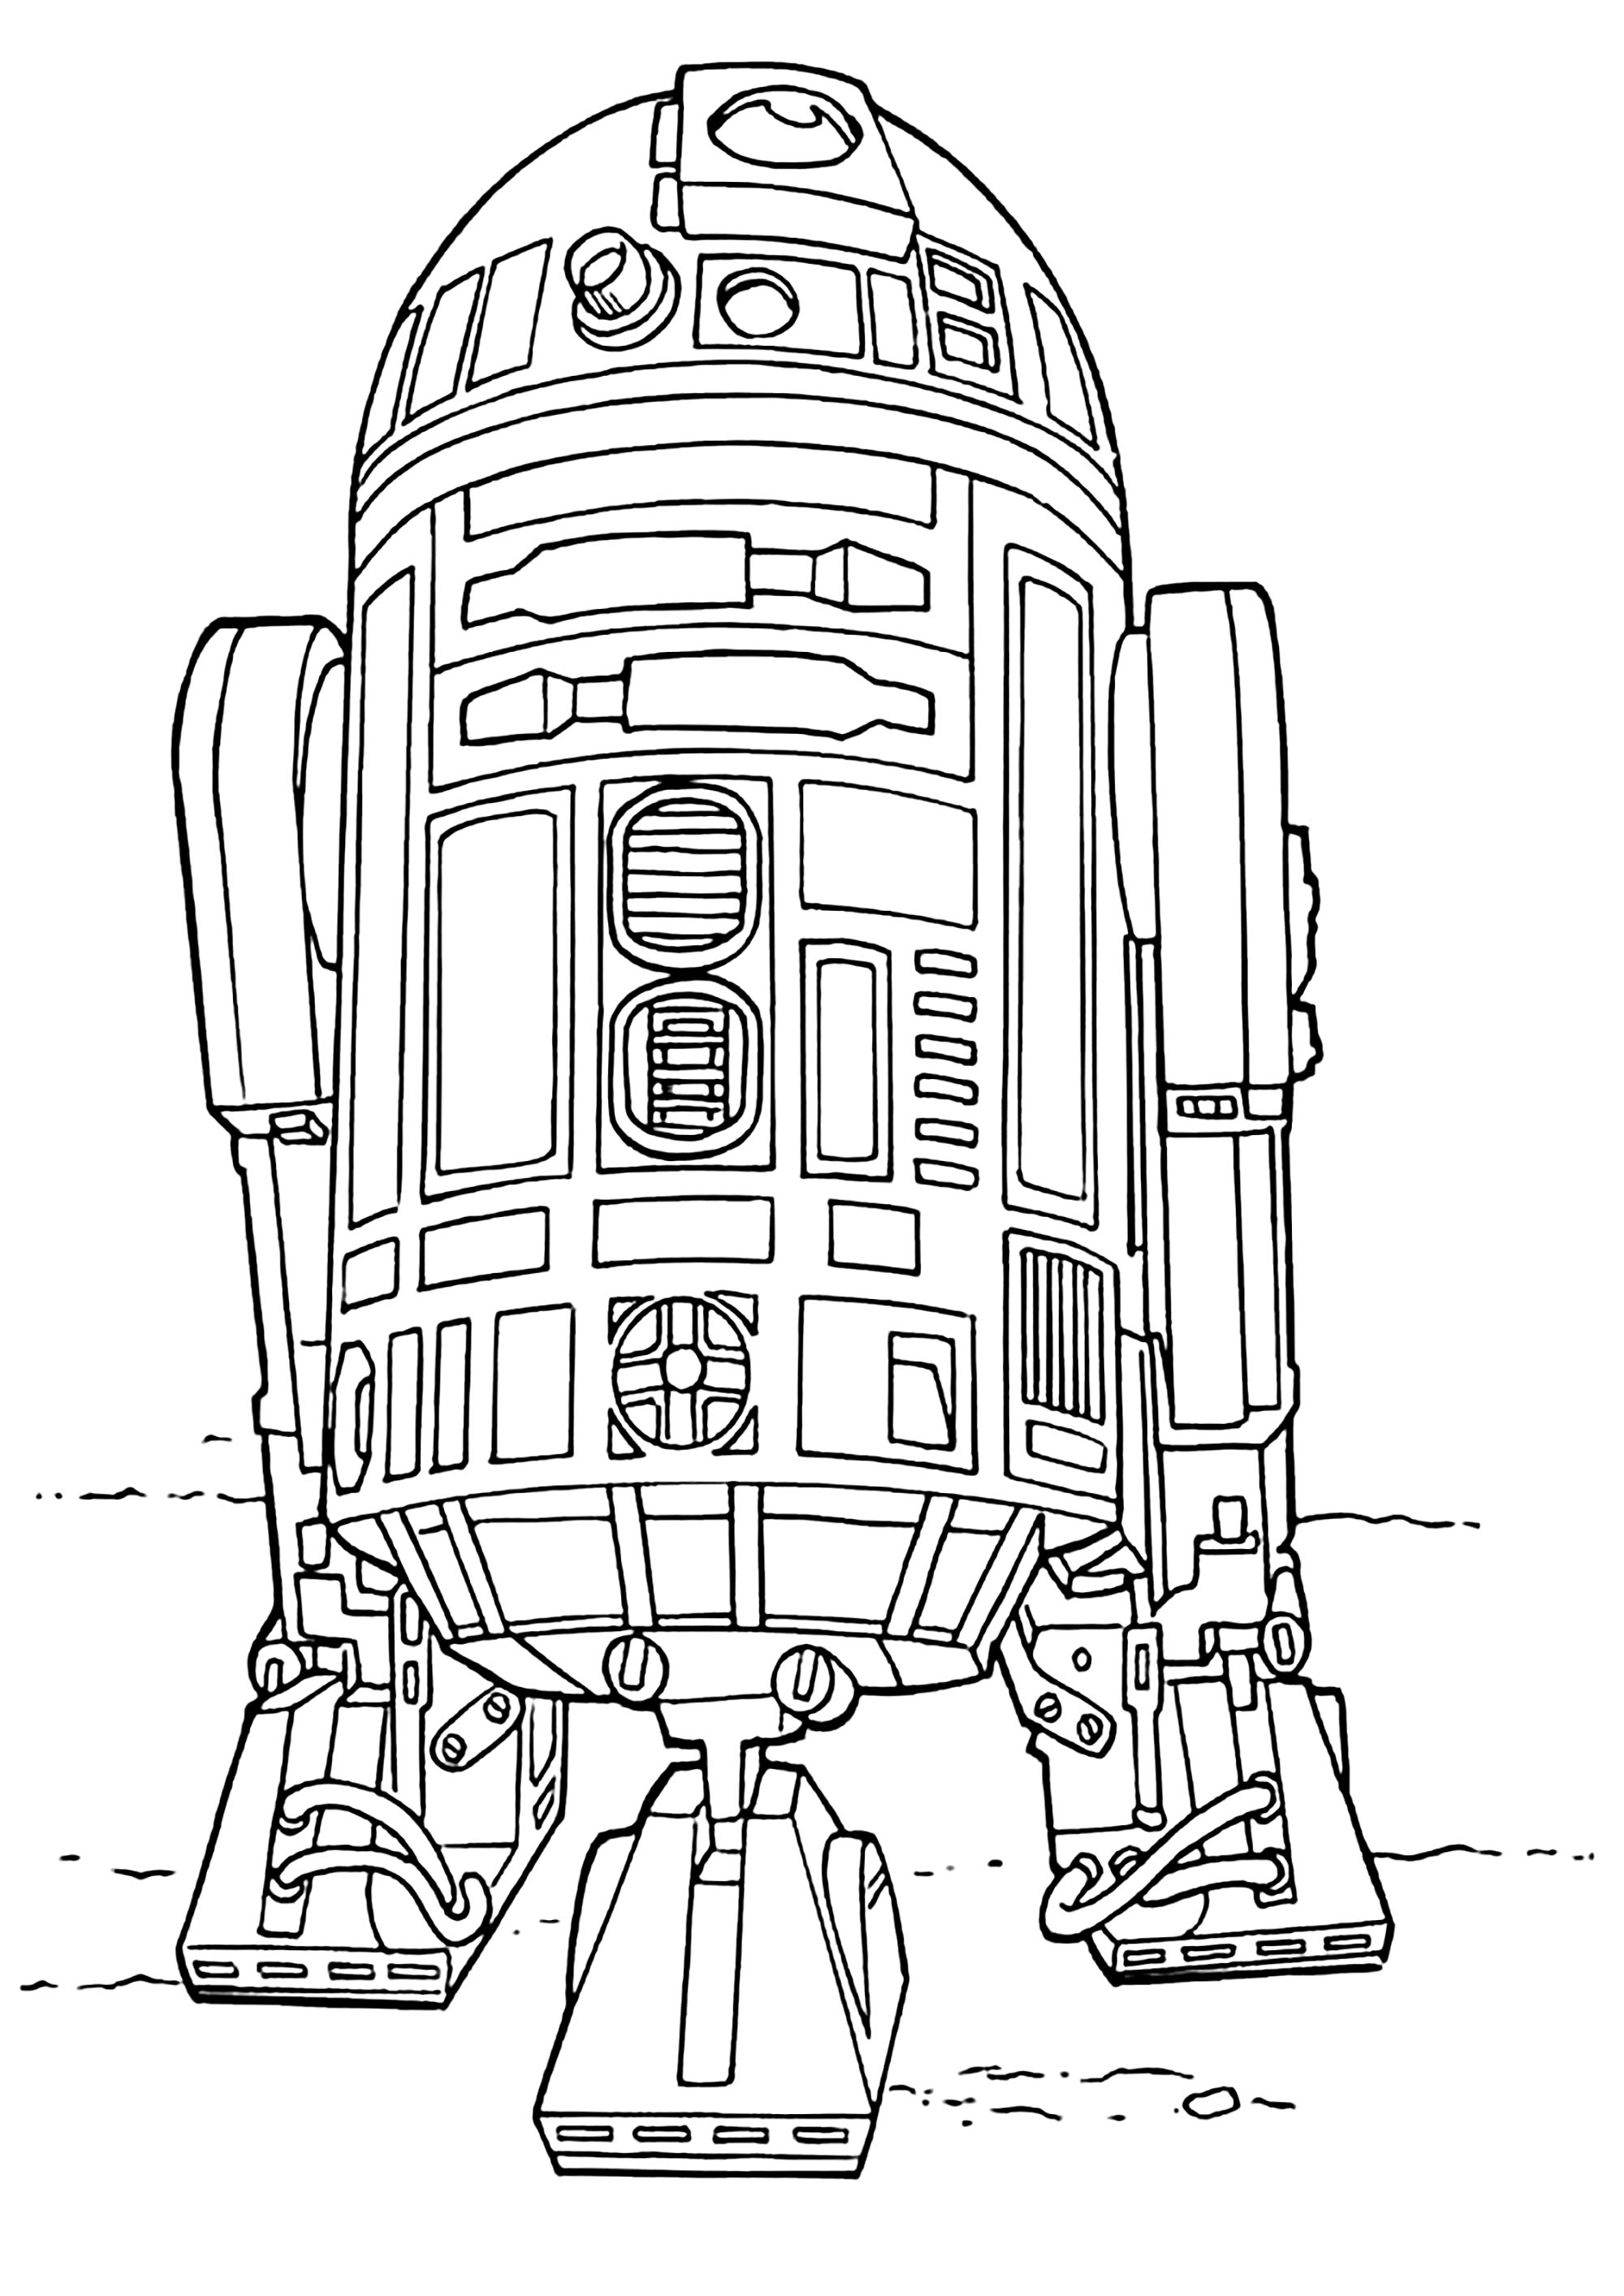 star wars pictures to print star wars free to color for kids star wars kids coloring wars print to pictures star